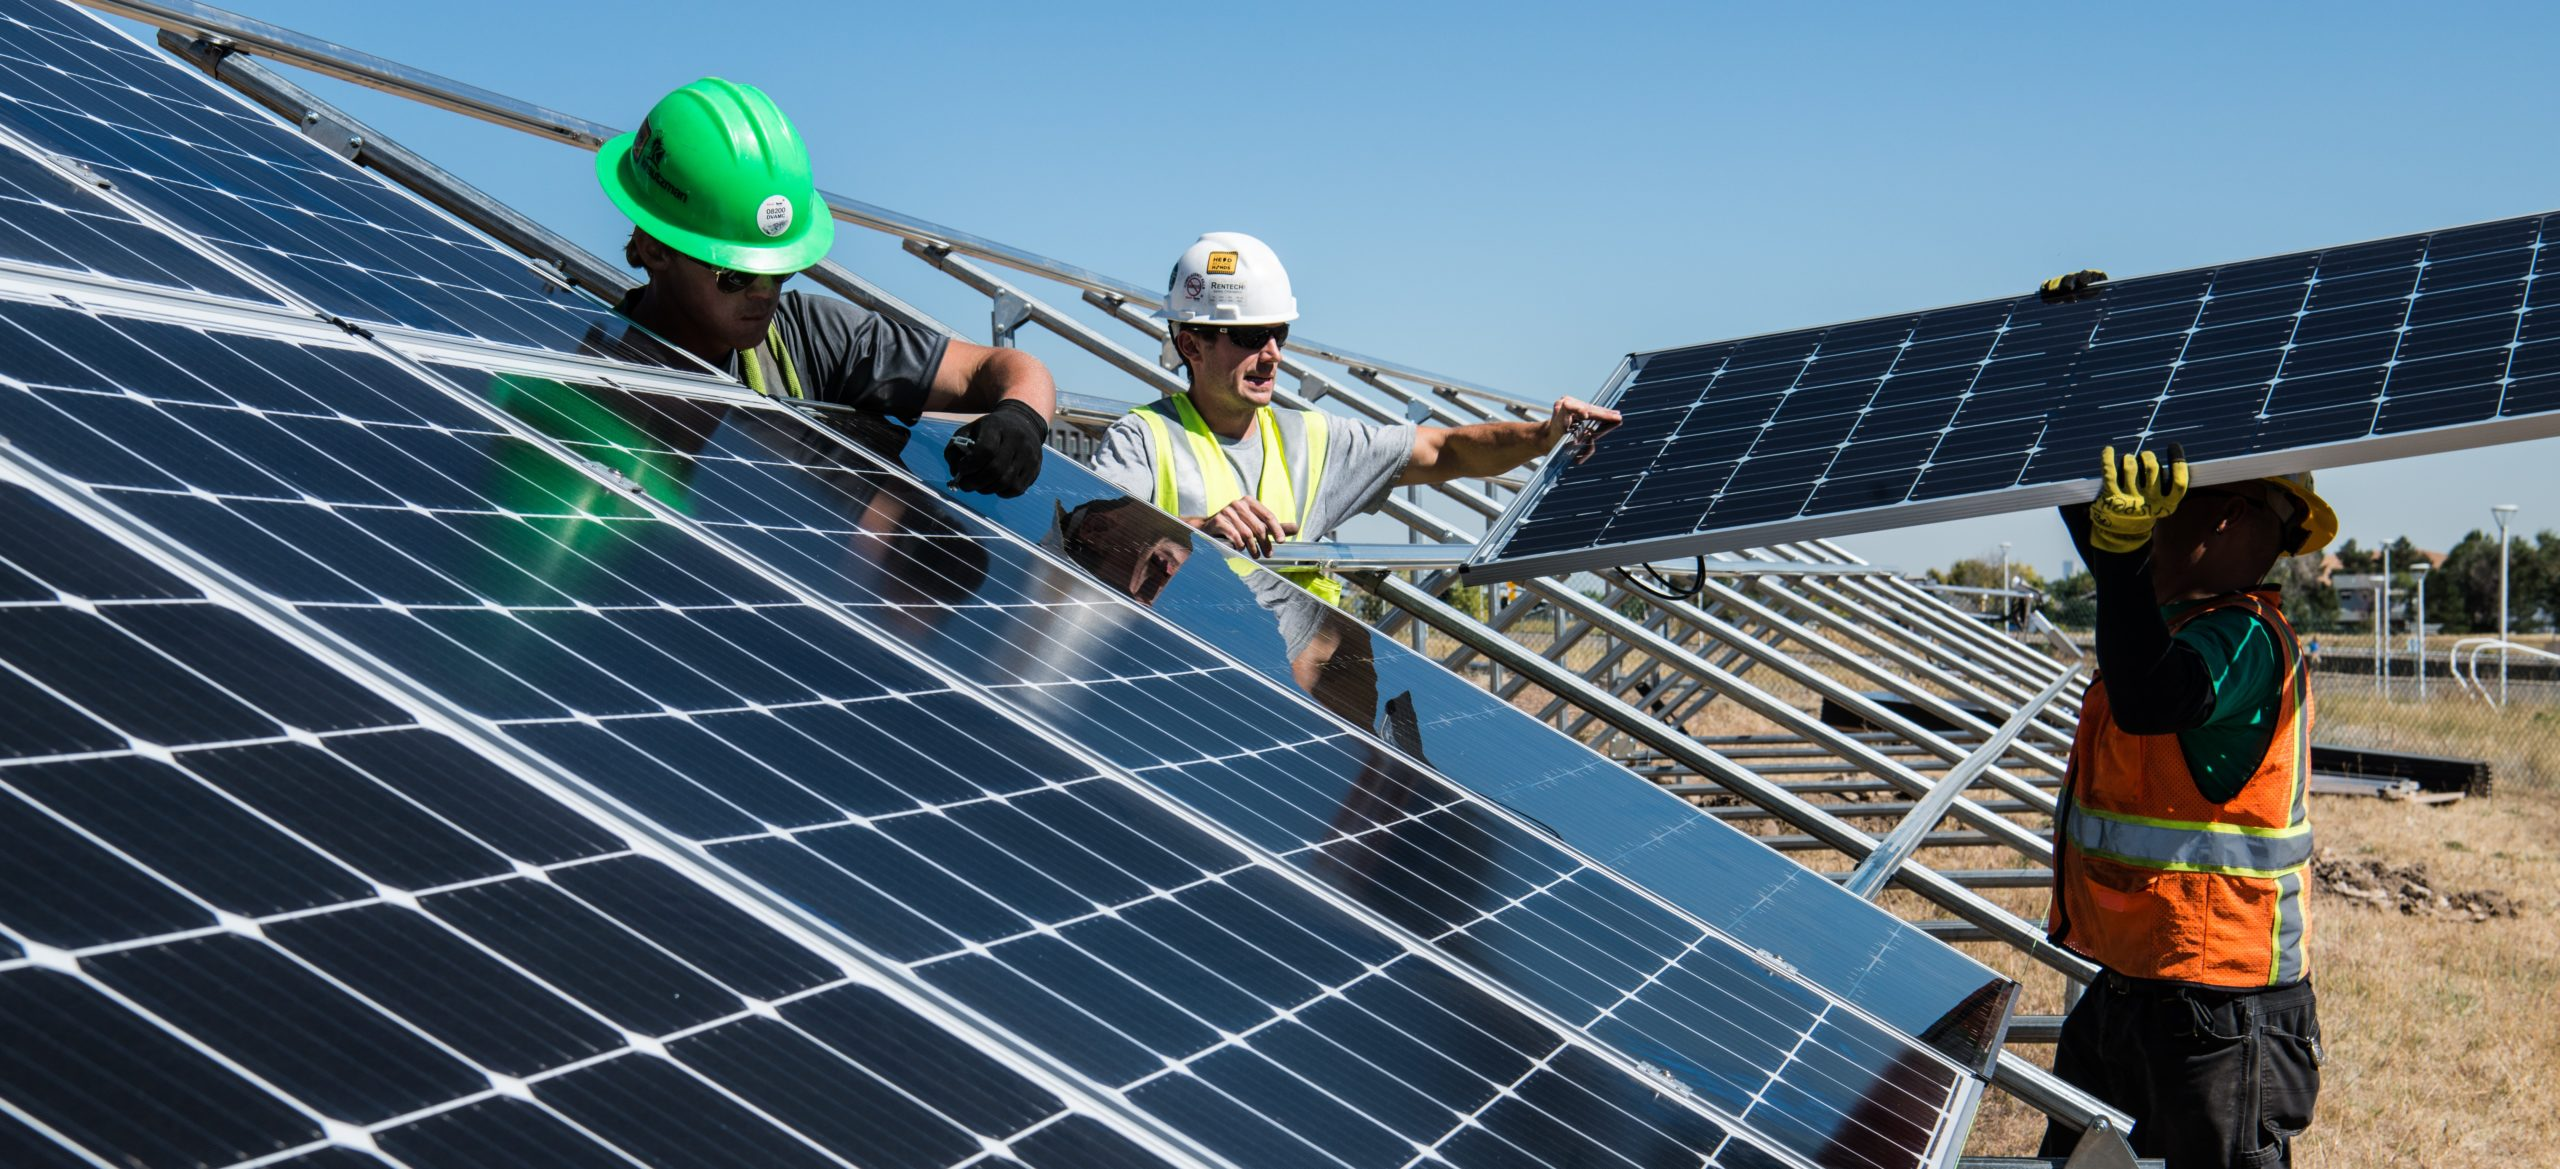 What should you consider before installing solar panels?